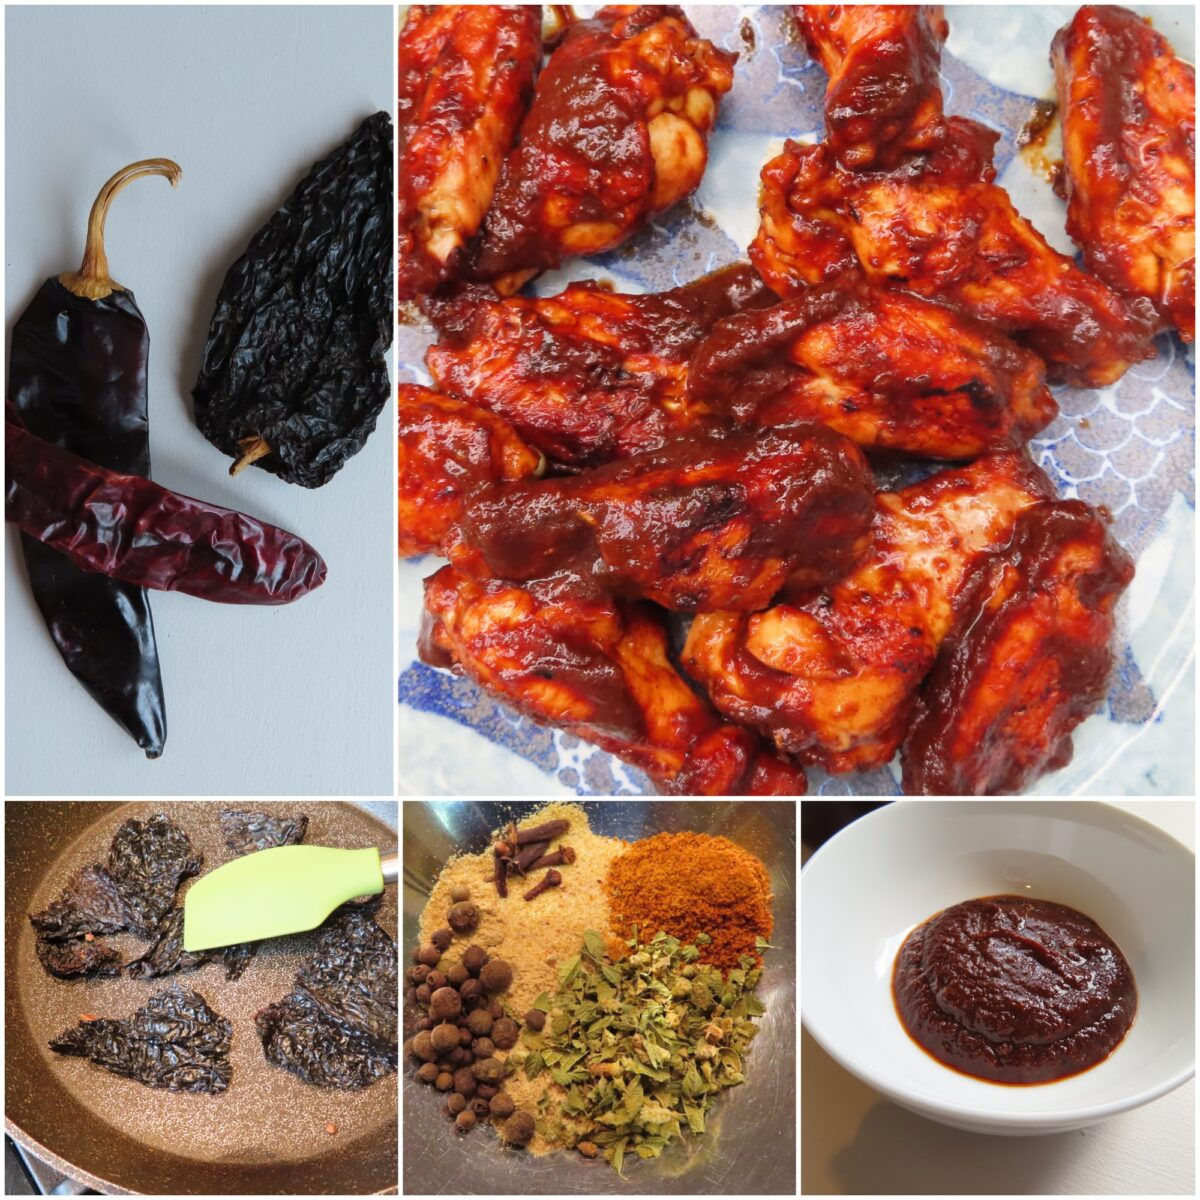 BBQ sauce ingredients and Wings